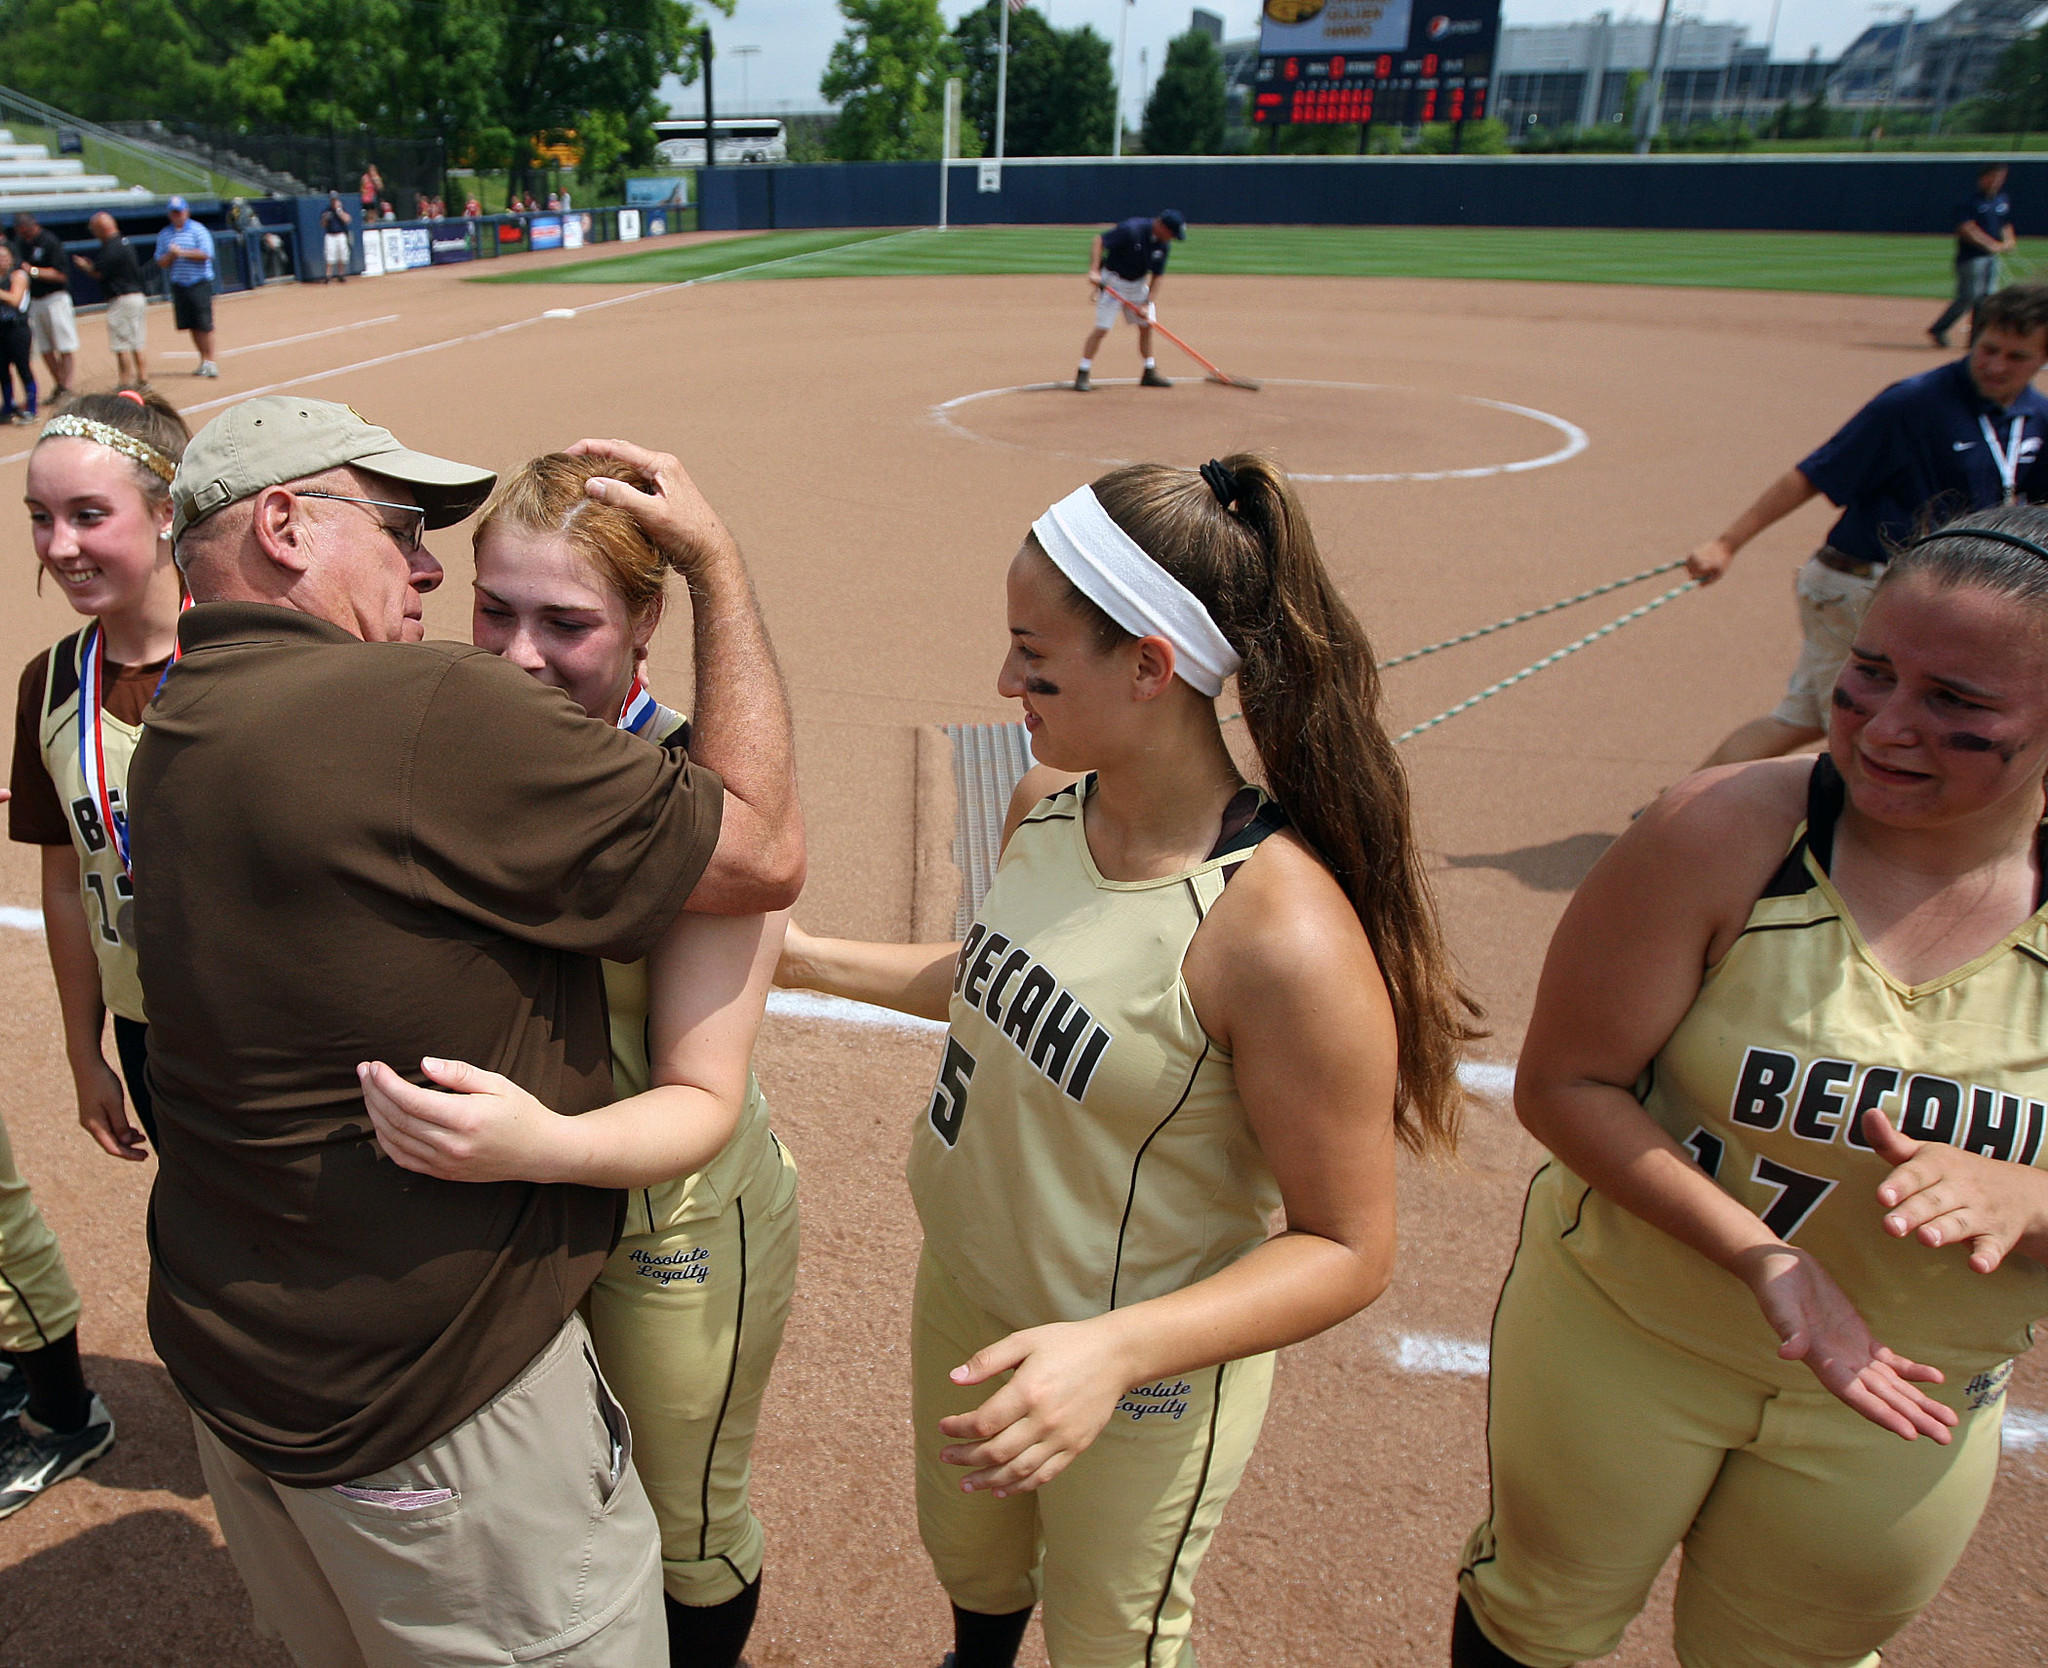 Bethlehem Catholic head coach Rich Mazza, hugs Elyse Cuttic (14) after giving a second place medal to her, after losing 3-0 to Springfield-Delco's , in the PIAA 3A Softball Championships Friday June 13, 2014 at Beard Field on the campus of Penn State University. //////CHRIS KNIGHT / SPECIAL TO THE MORNING CALL